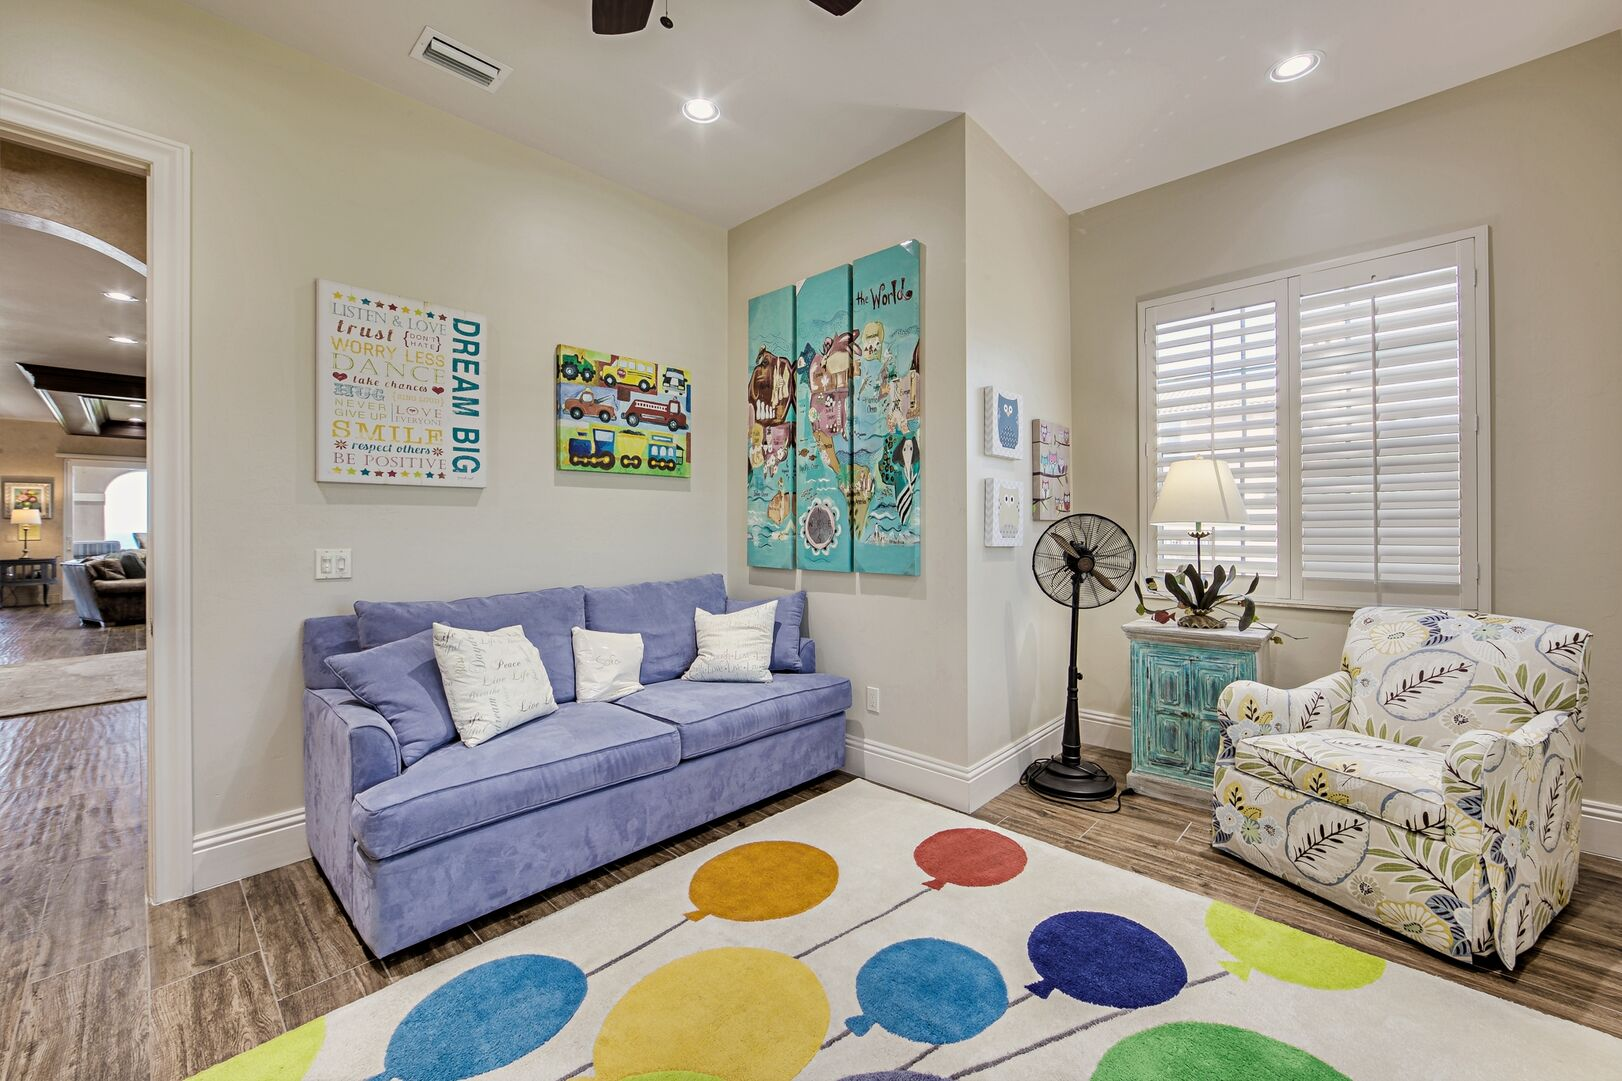 Children's Room with Sofas, Nightstand, and Table Lamp.